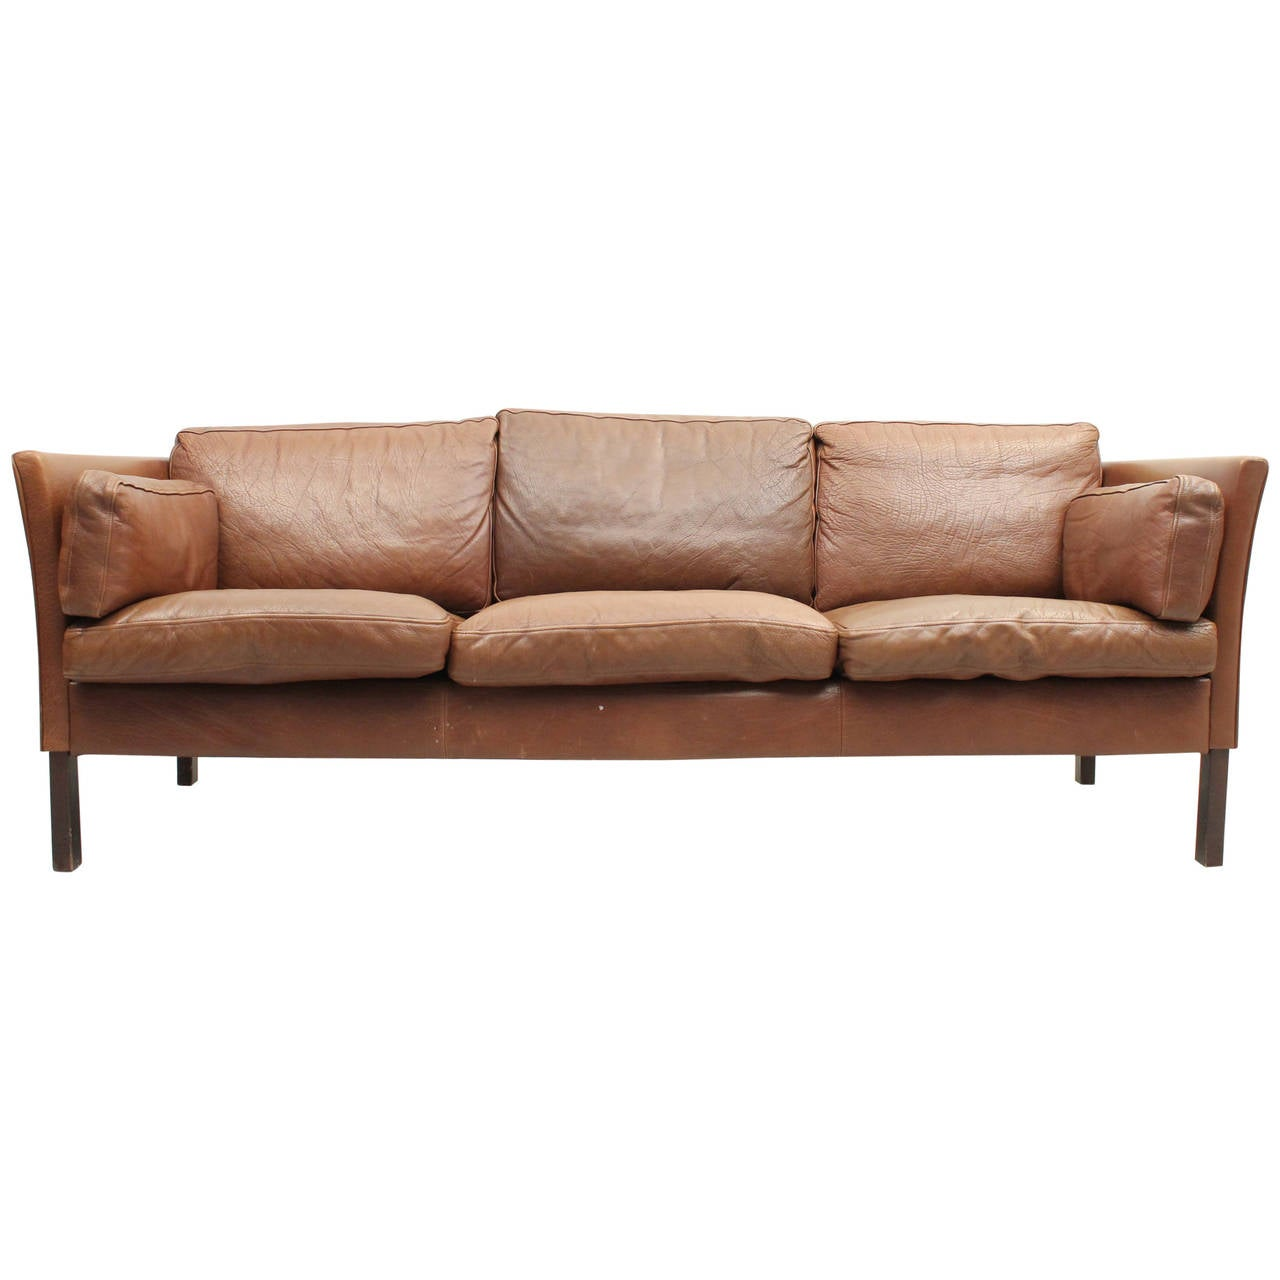 Danish Mid Century Modern Leather Sofa At 1stdibs